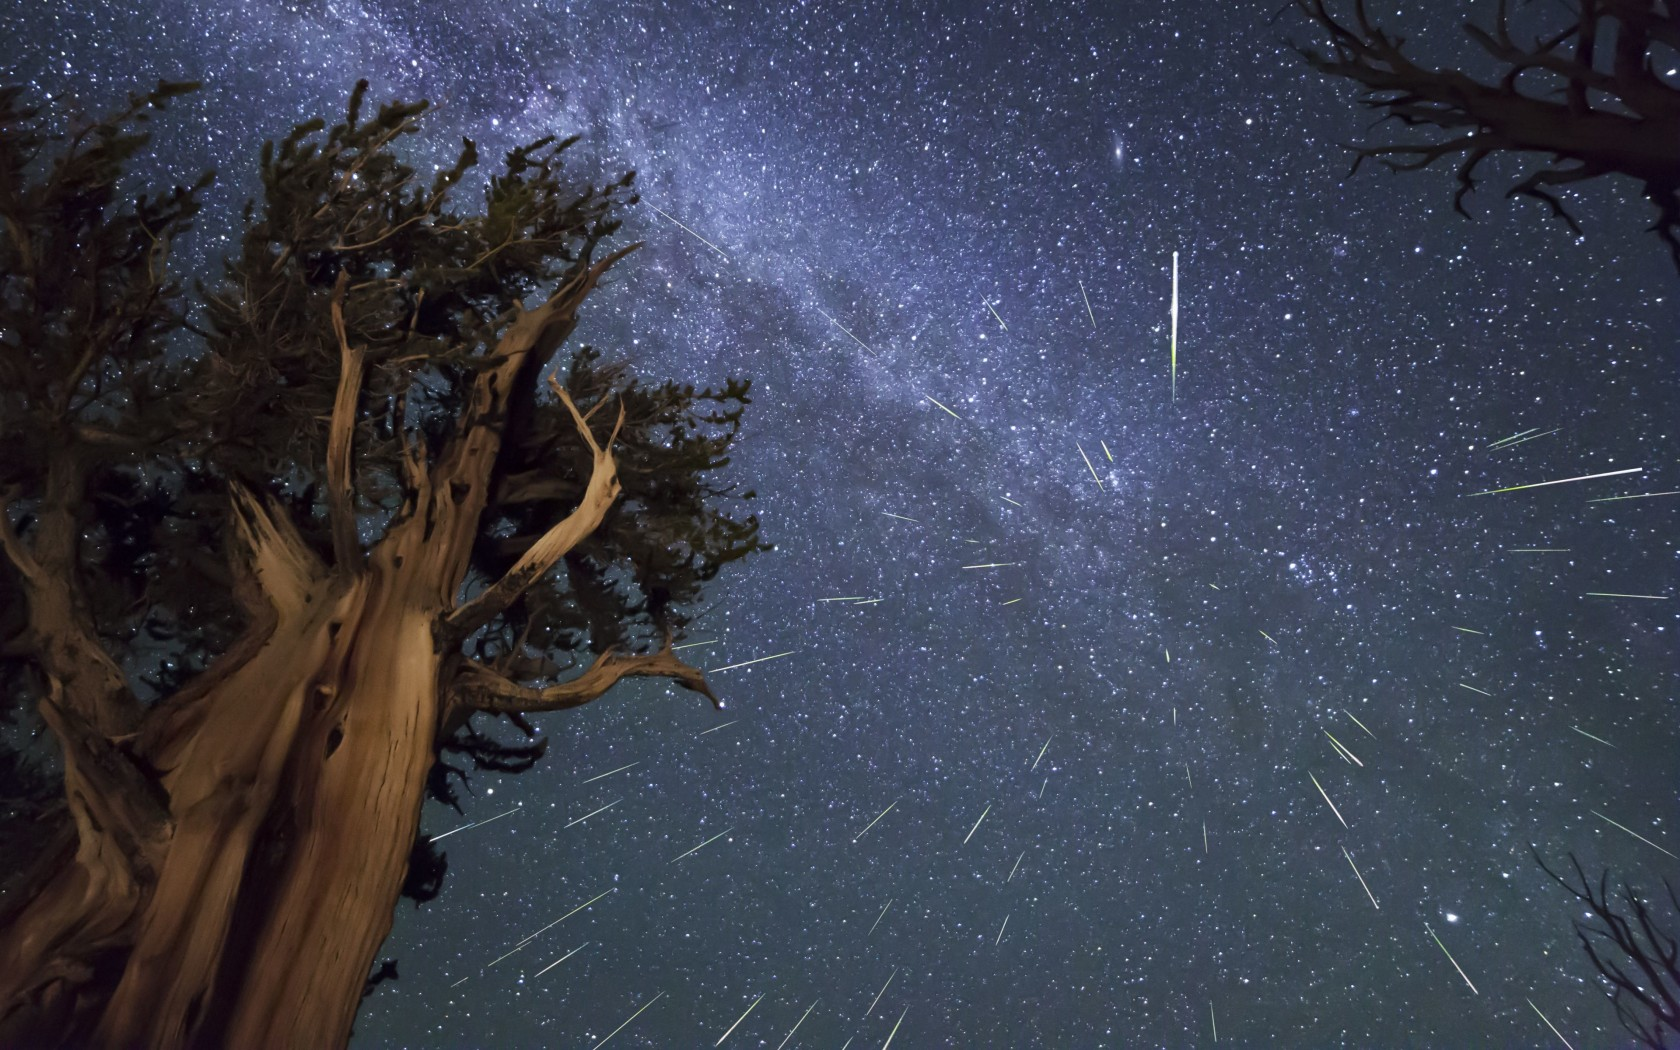 Meteor Shower Wallpaper for Desktop 1680x1050